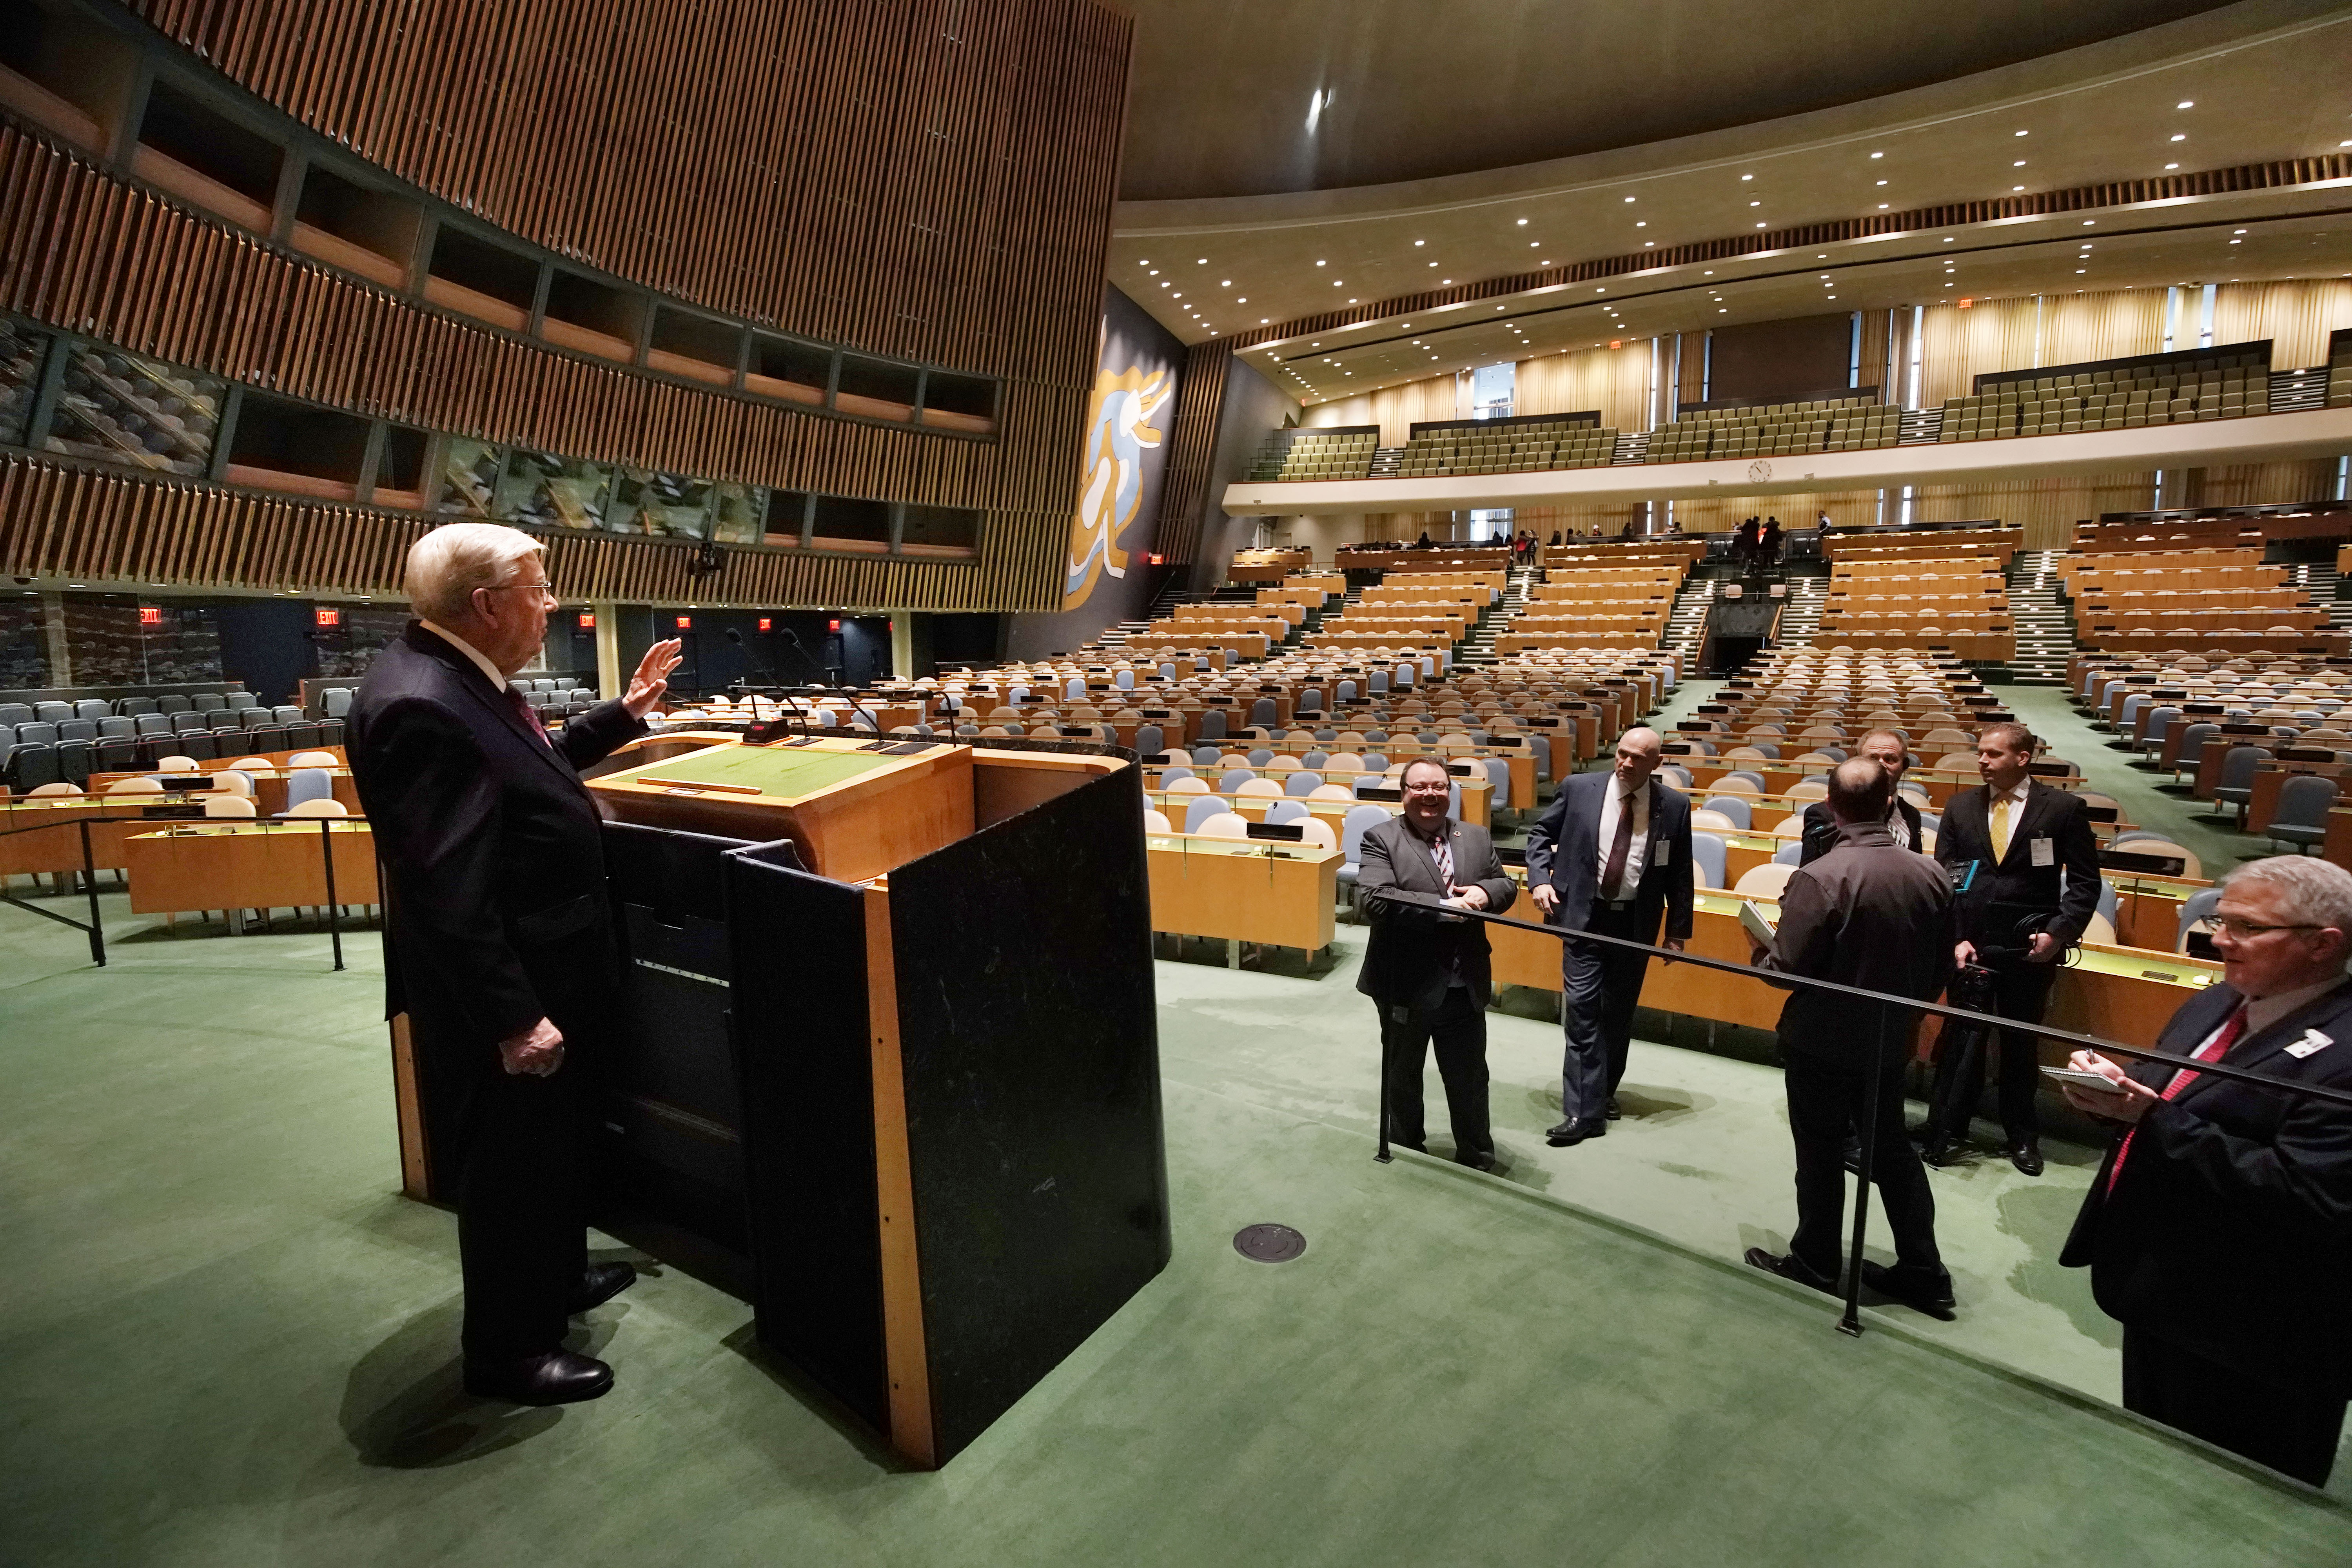 President M. Russell Ballard, acting president of the Quorum of the Twelve Apostles of The Church of Jesus Christ of Latter-day Saints, talks with reporters as he visits the podium of the General Assembly Hall of the United Nations in New York City on Friday, Nov. 15, 2019.